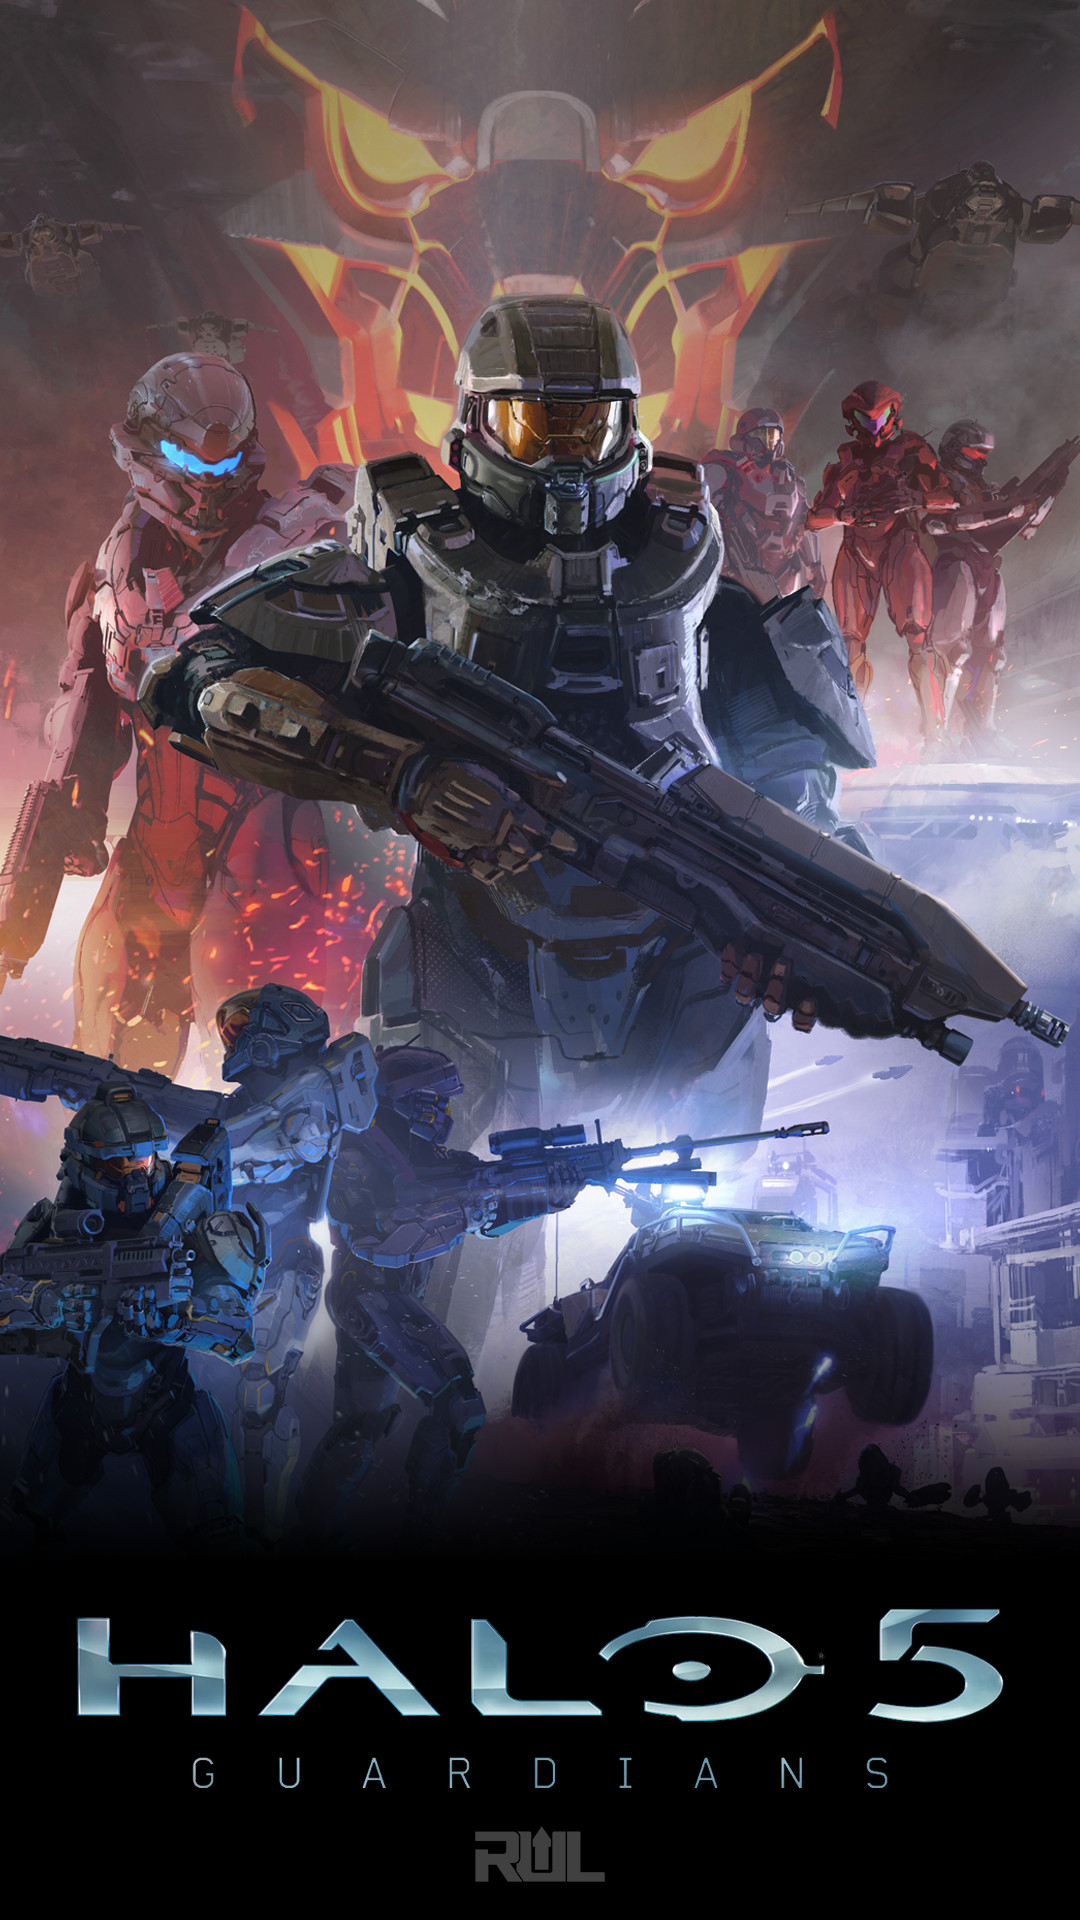 Halo 5 Phone Wallpapers, Profile Pics, and More